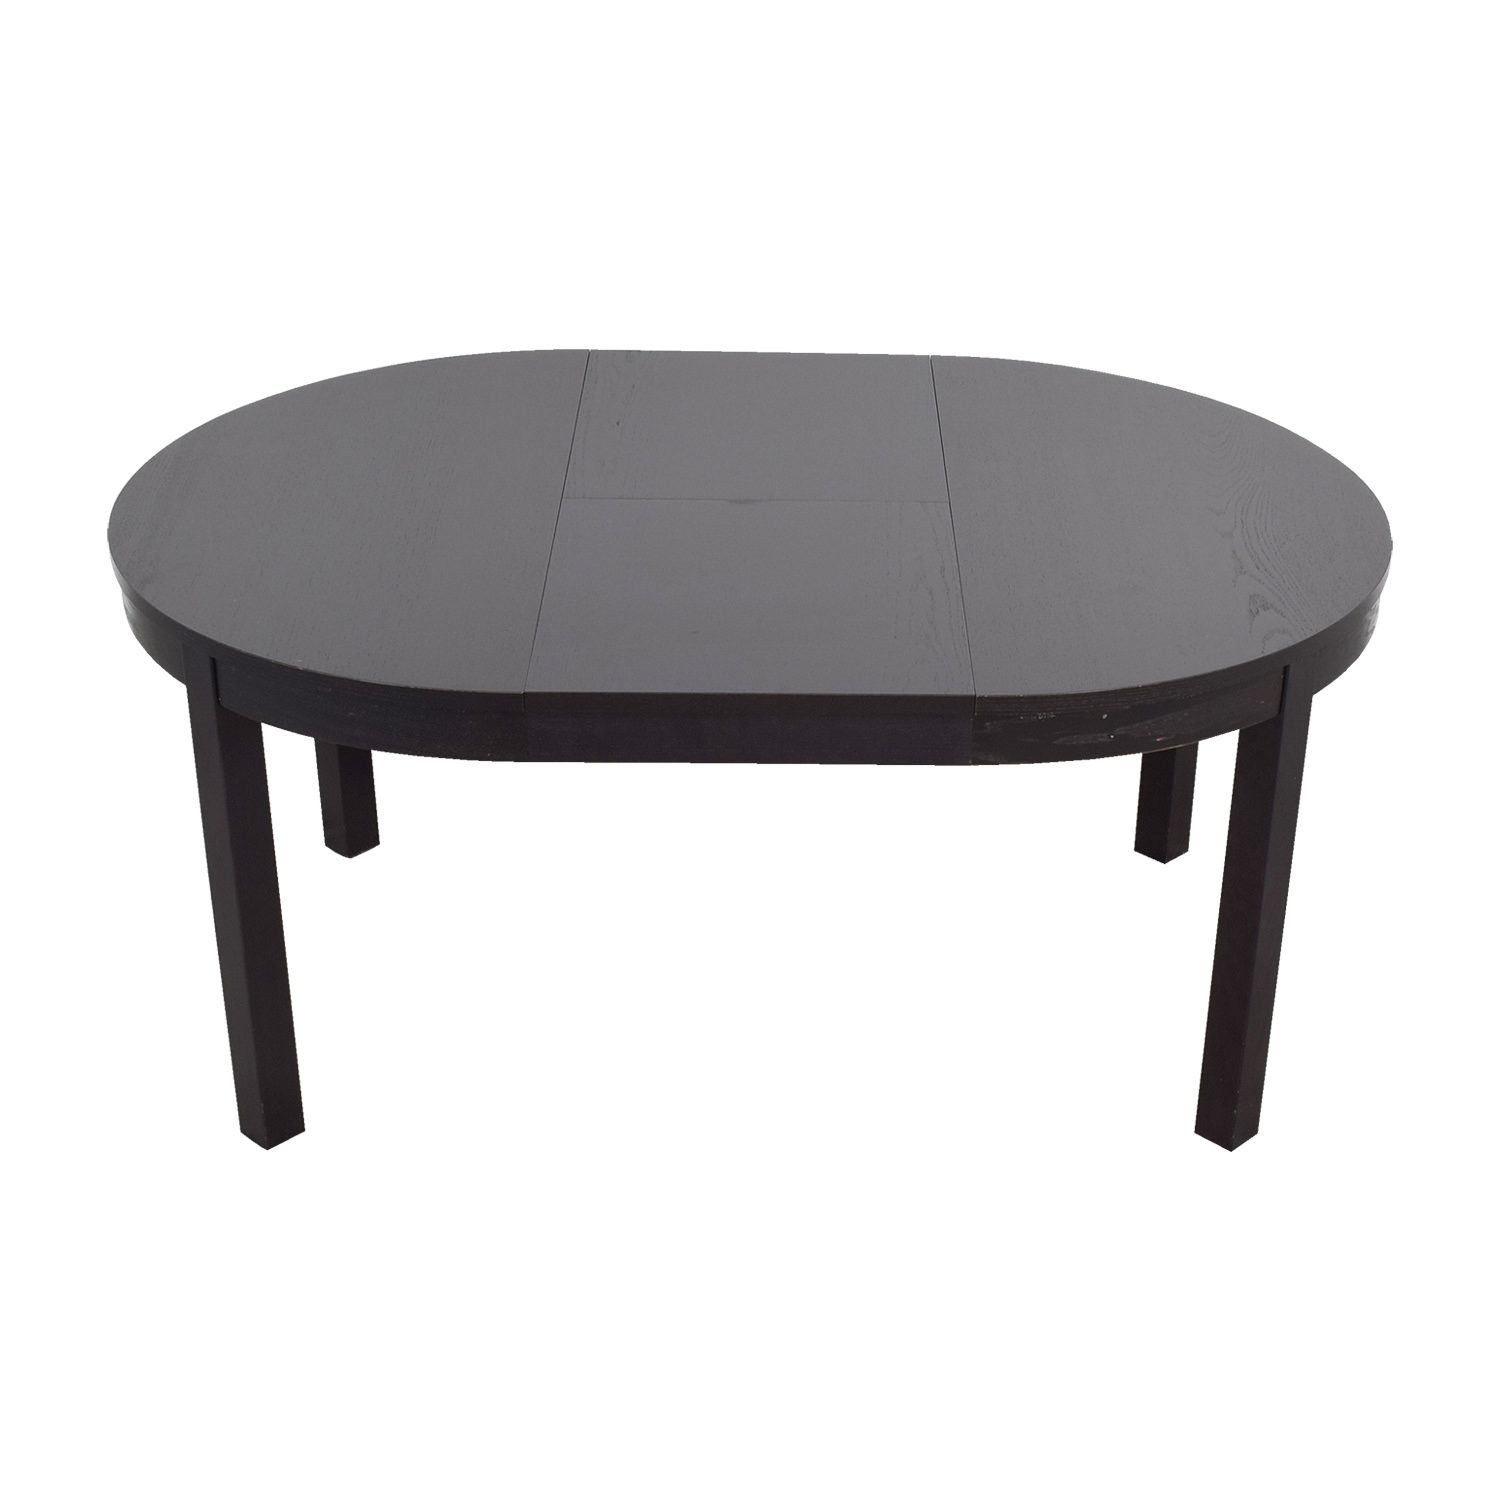 75 off ikea ikea bjursta extendable round to oval dining table tables - Ikea round extendable table ...